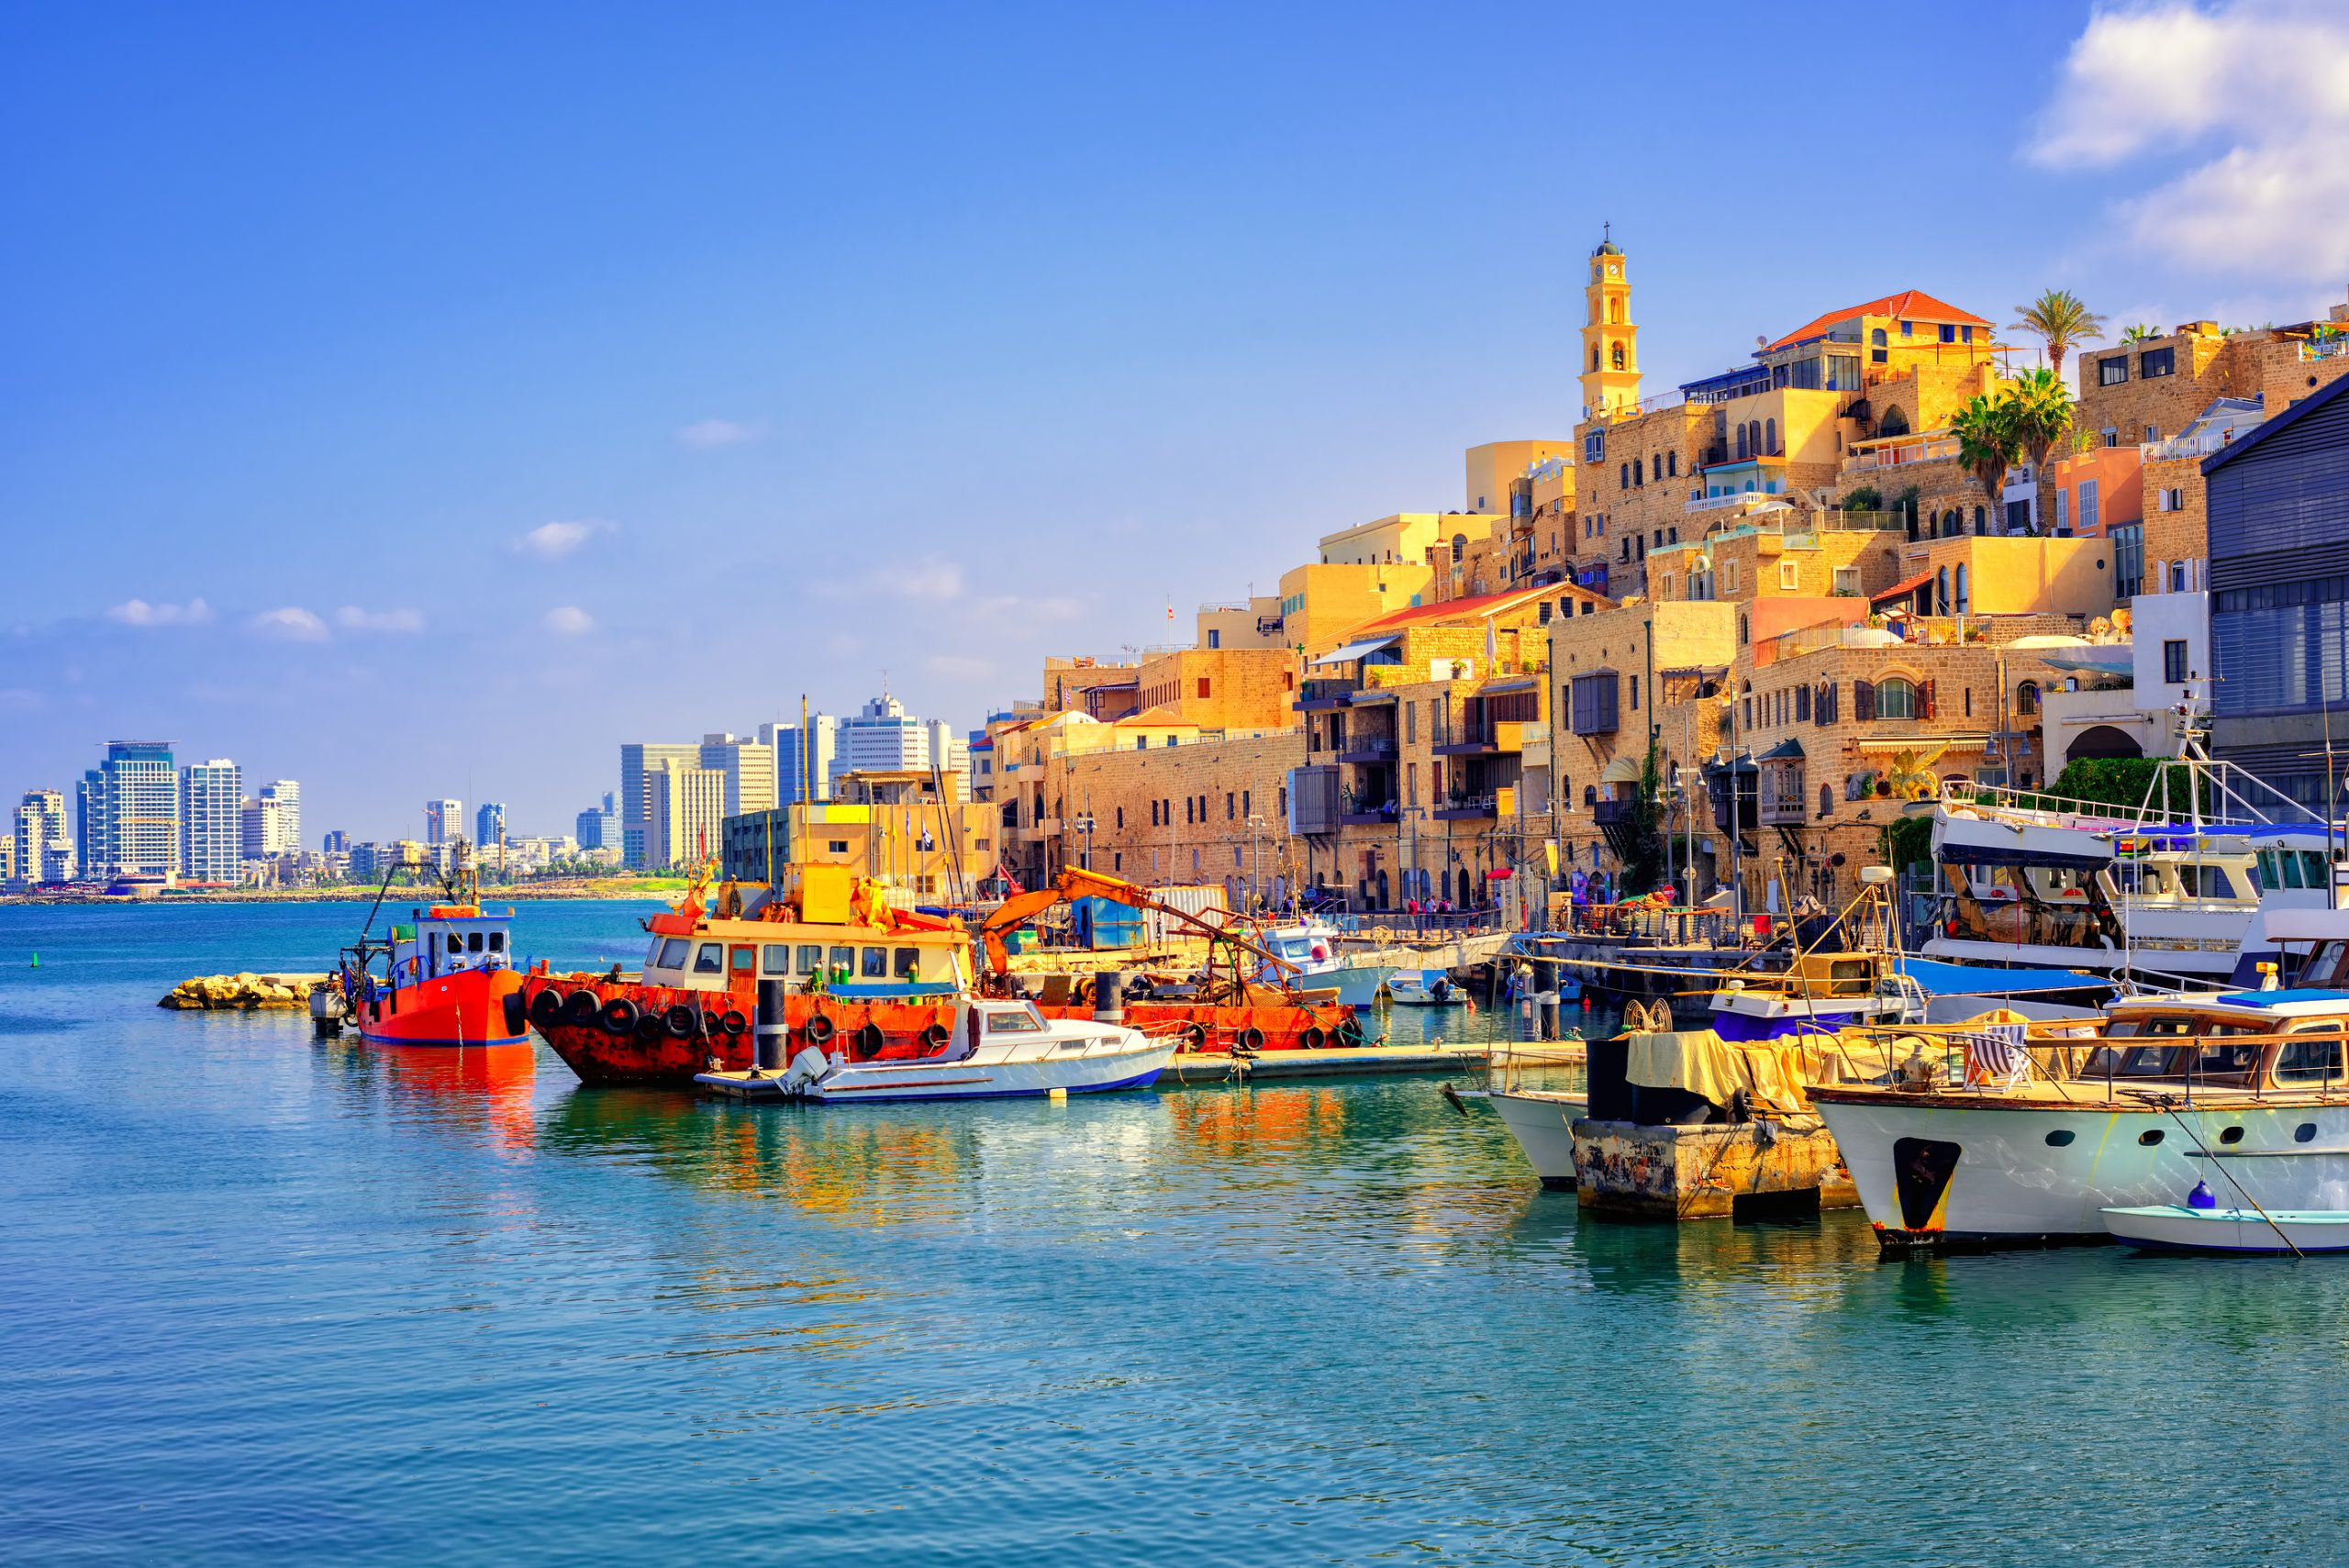 Jaffa Old town and port -  tel aviv things to do